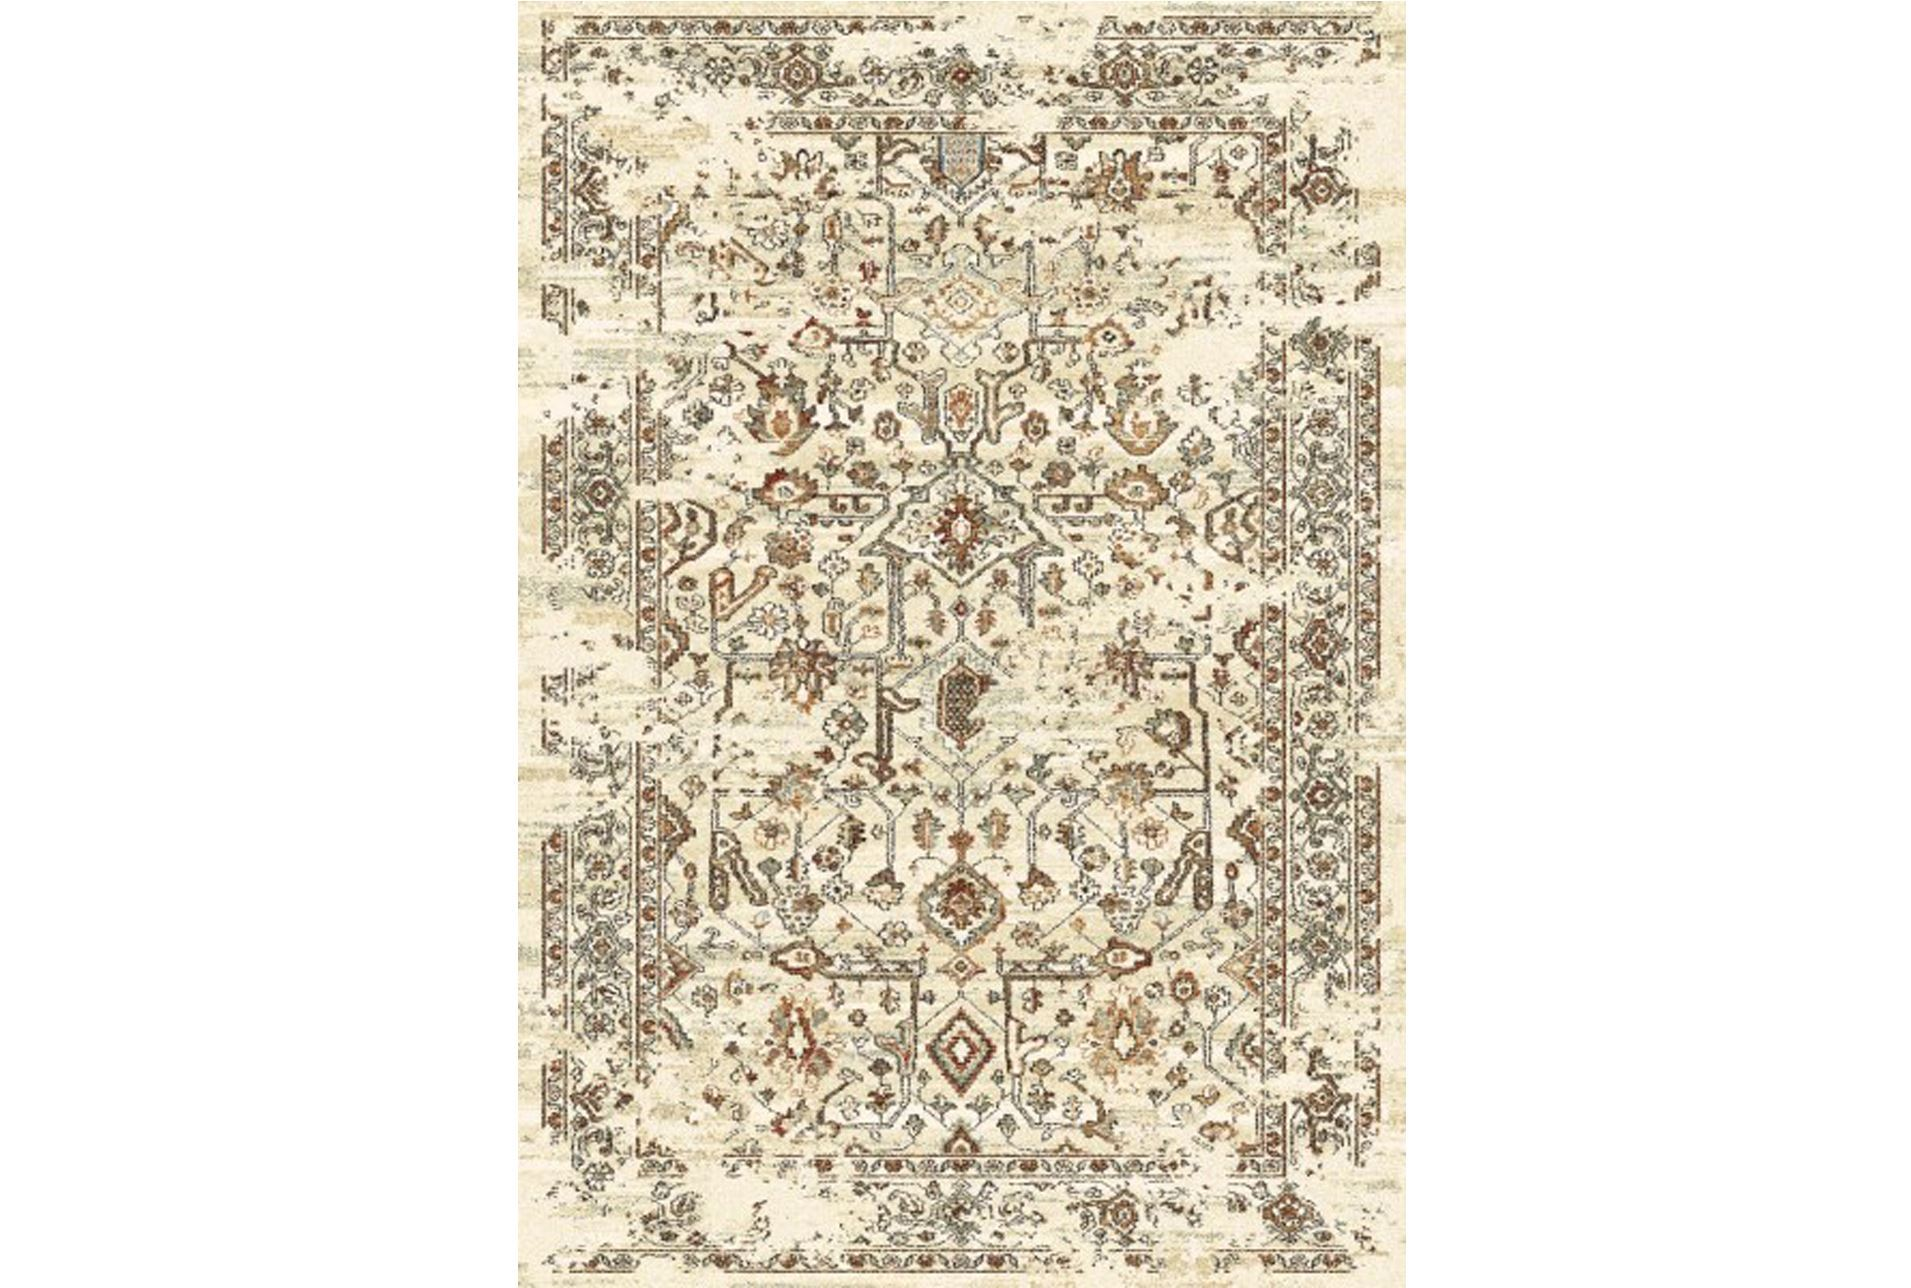 63x91 rug courtney sunset living spaces for Living spaces rugs